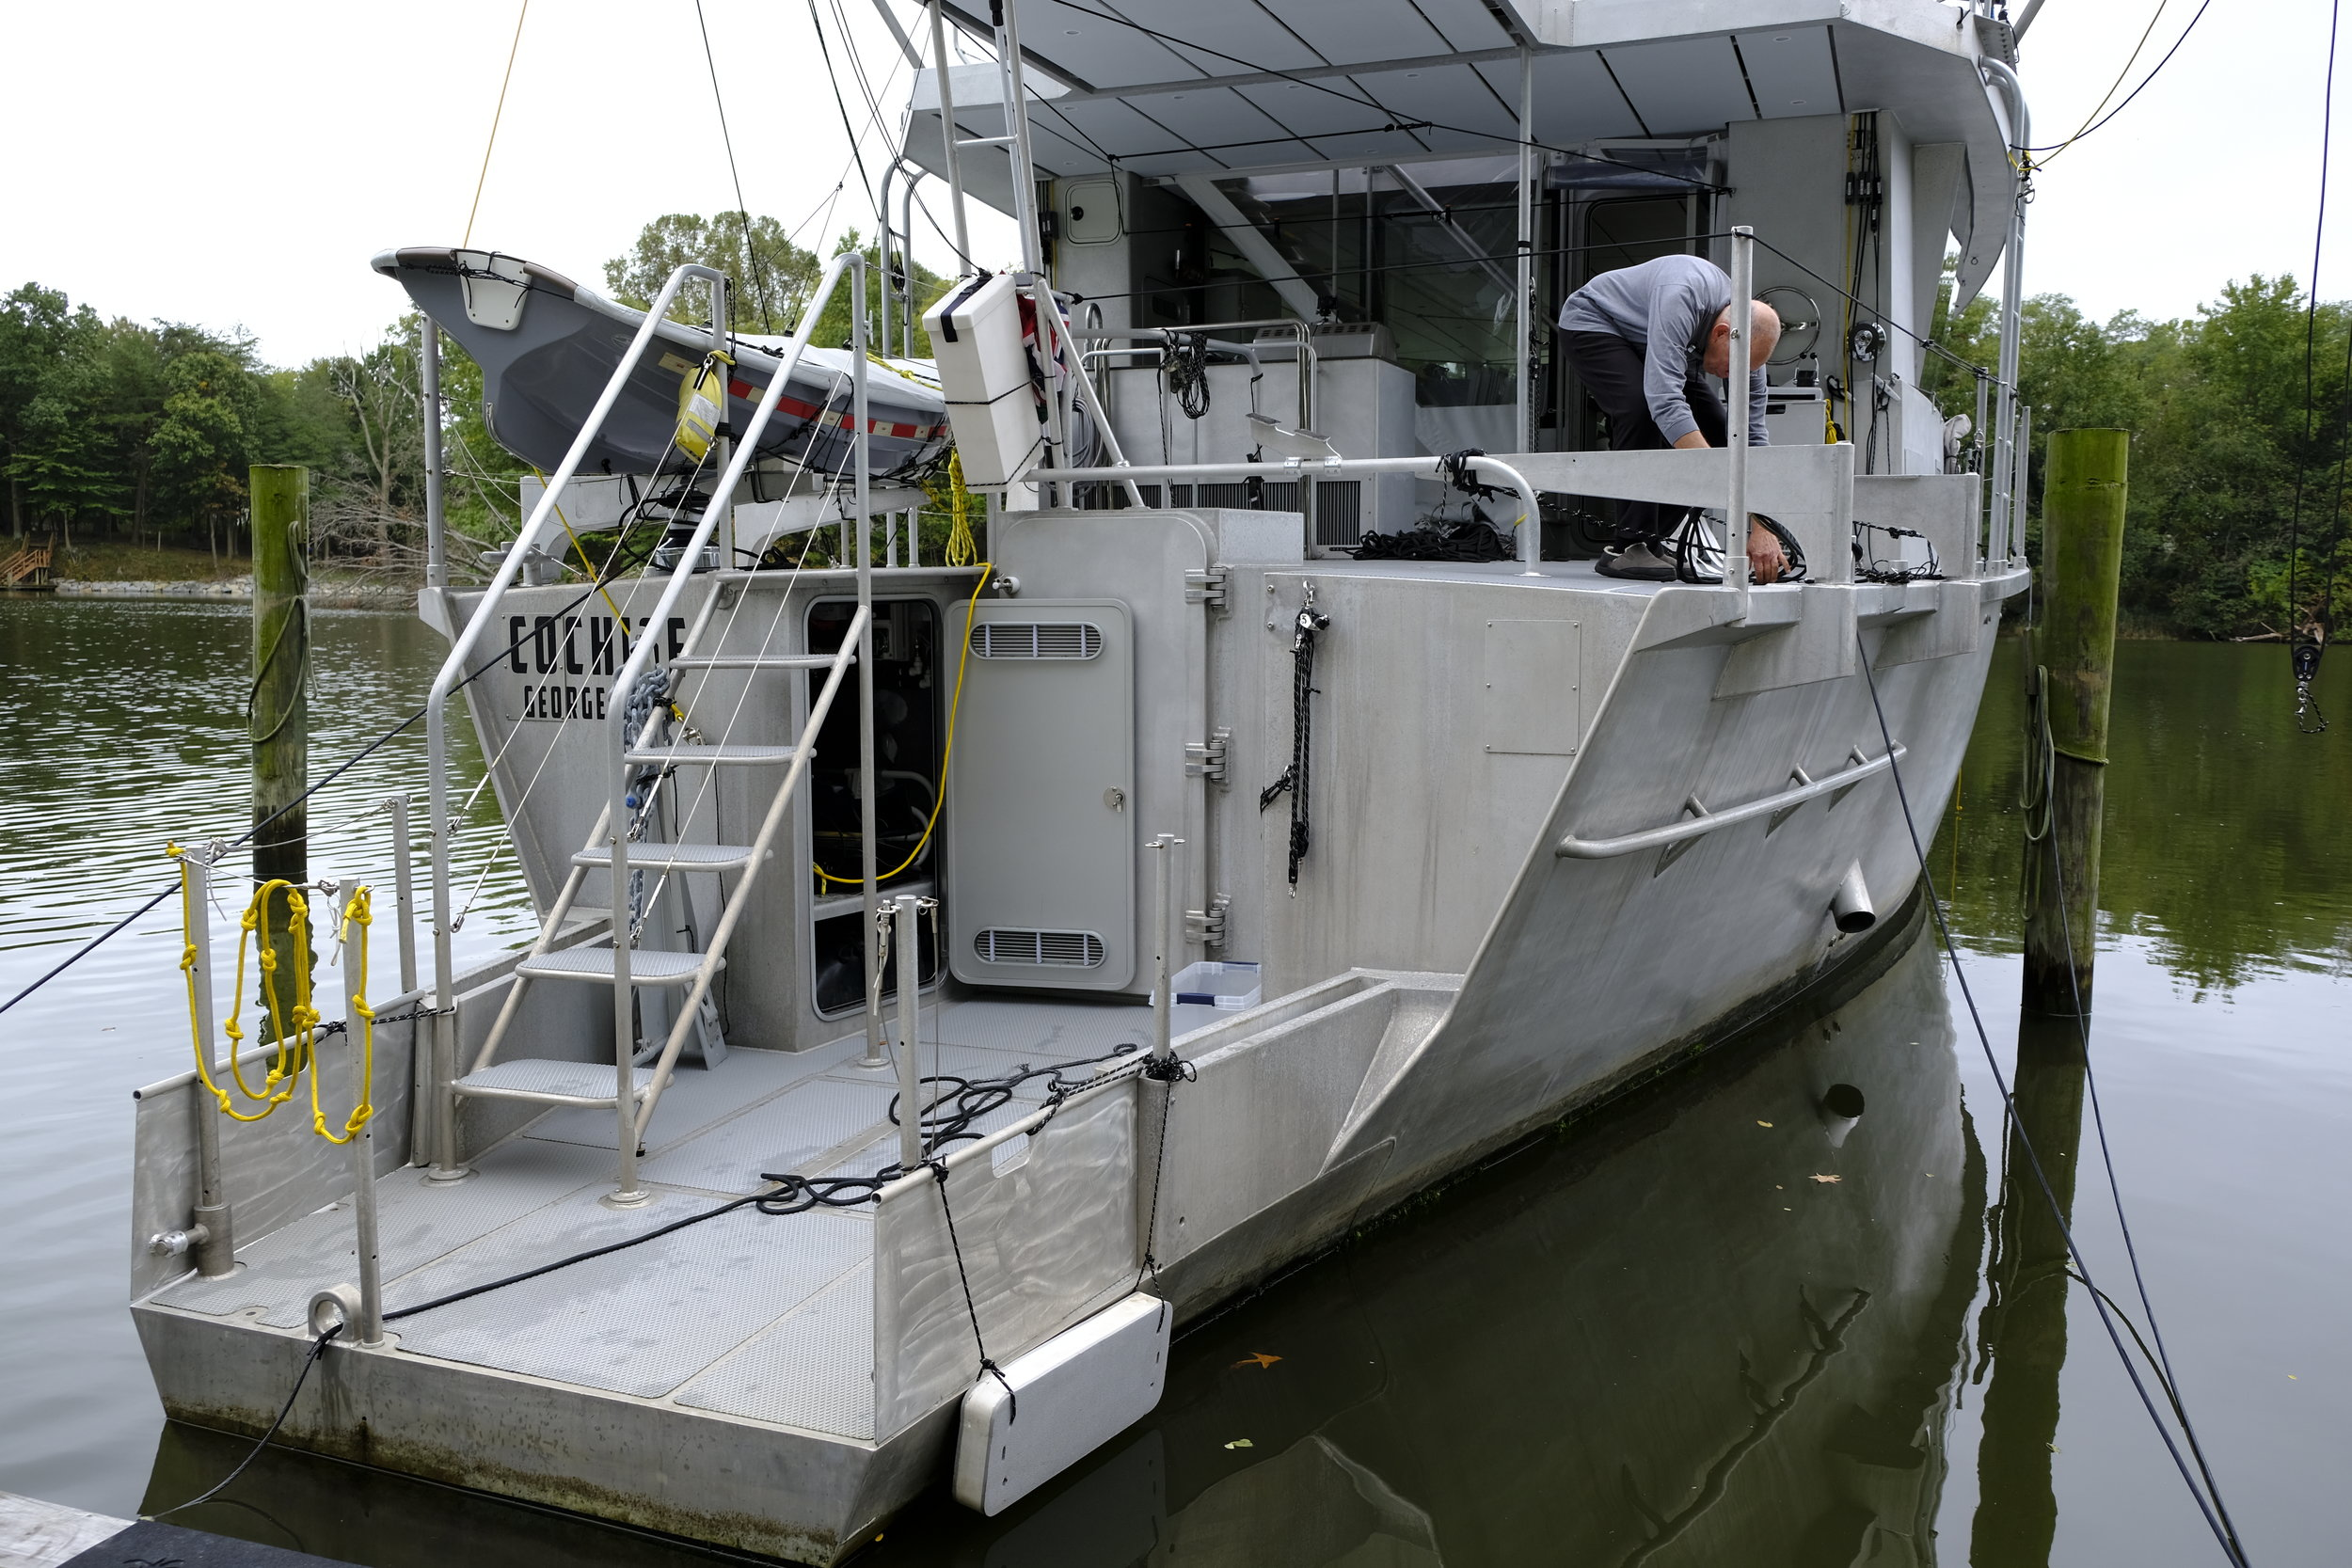 The multi-purpose stern offer great utility, with several boarding options, watertight doors into storage lockers and engine room/workshop access, and handling large fish caught offshore. The narrow stern allows following seas to pass by without forcing the bow down into waves, keeping the boat on track.